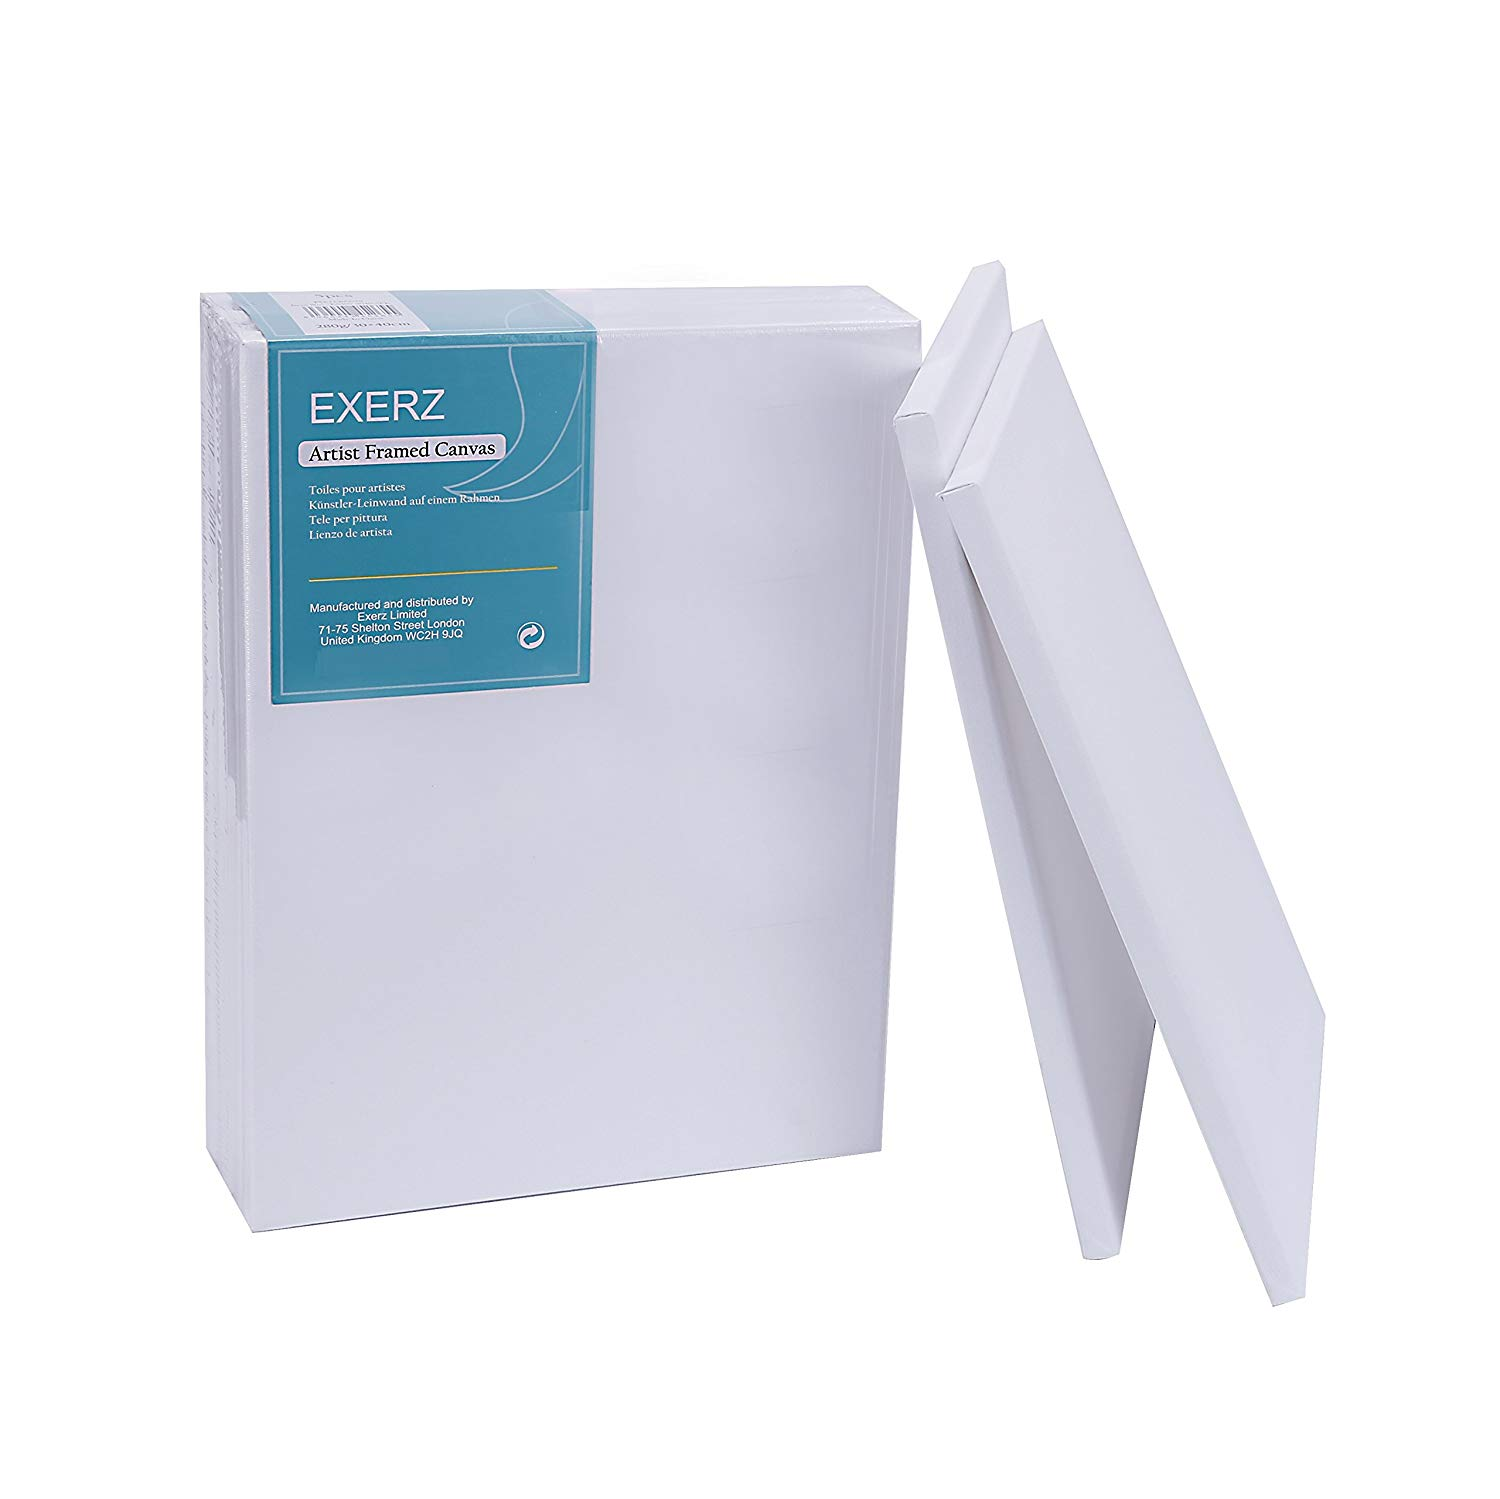 "Exerz E5309-3040-5 Artist Framed Canvas 5 Pack / 16"" x 12"" / 40 x 30cm 280GSM/ Pre-Stretched 100% Cotton/Blank / Triple Primed/Acid Free/Medium Grain/ 1.7 cm Thick"